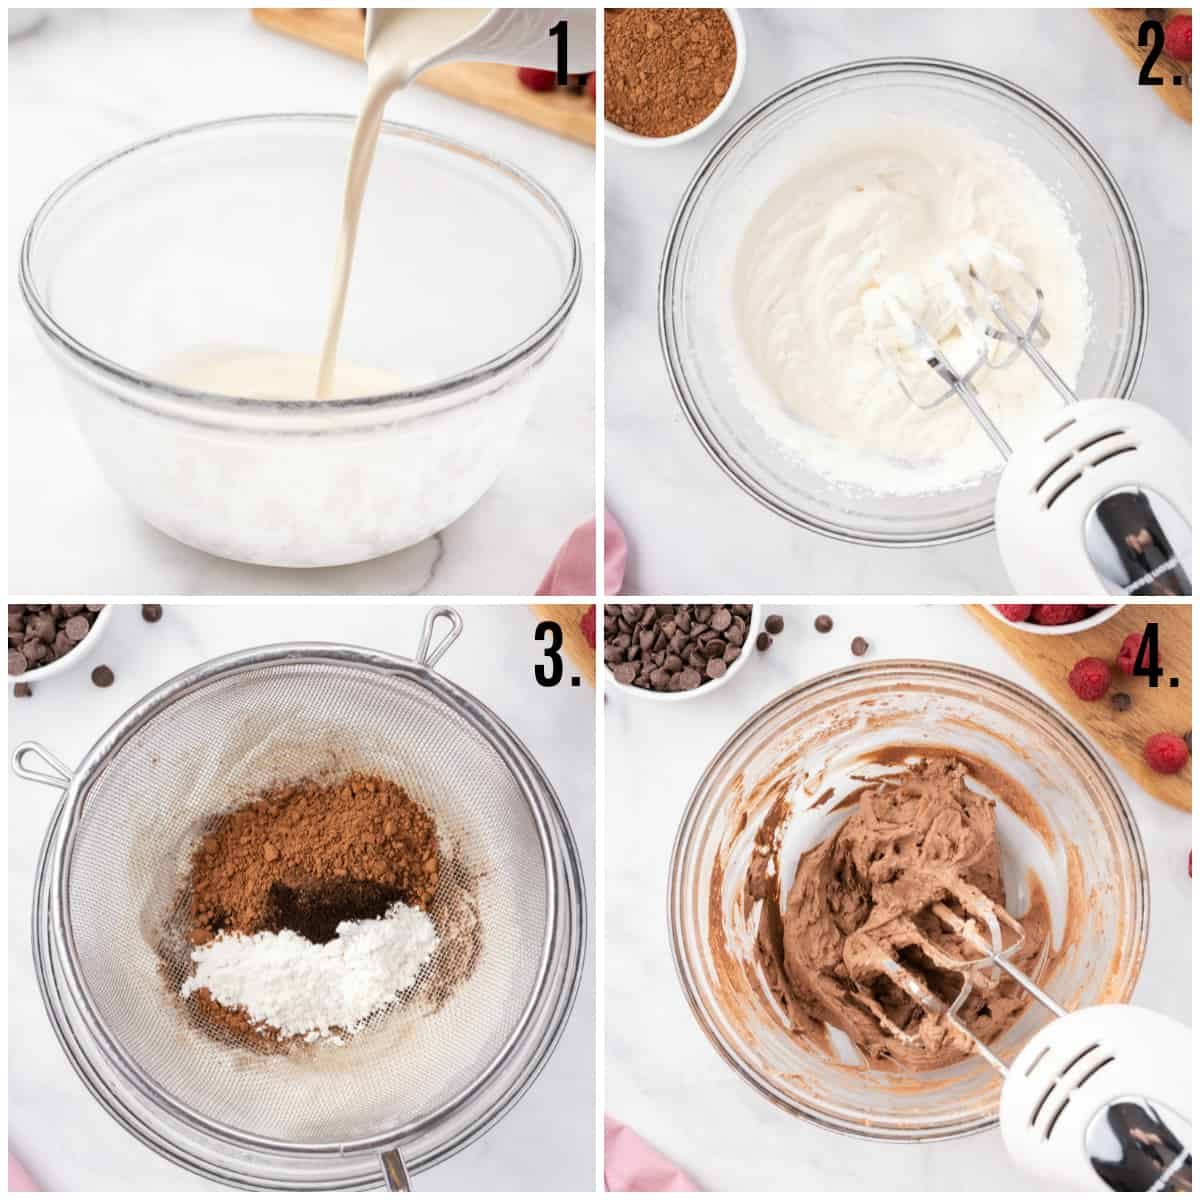 Step by step photos on how to make Easy Chocolate Mousse